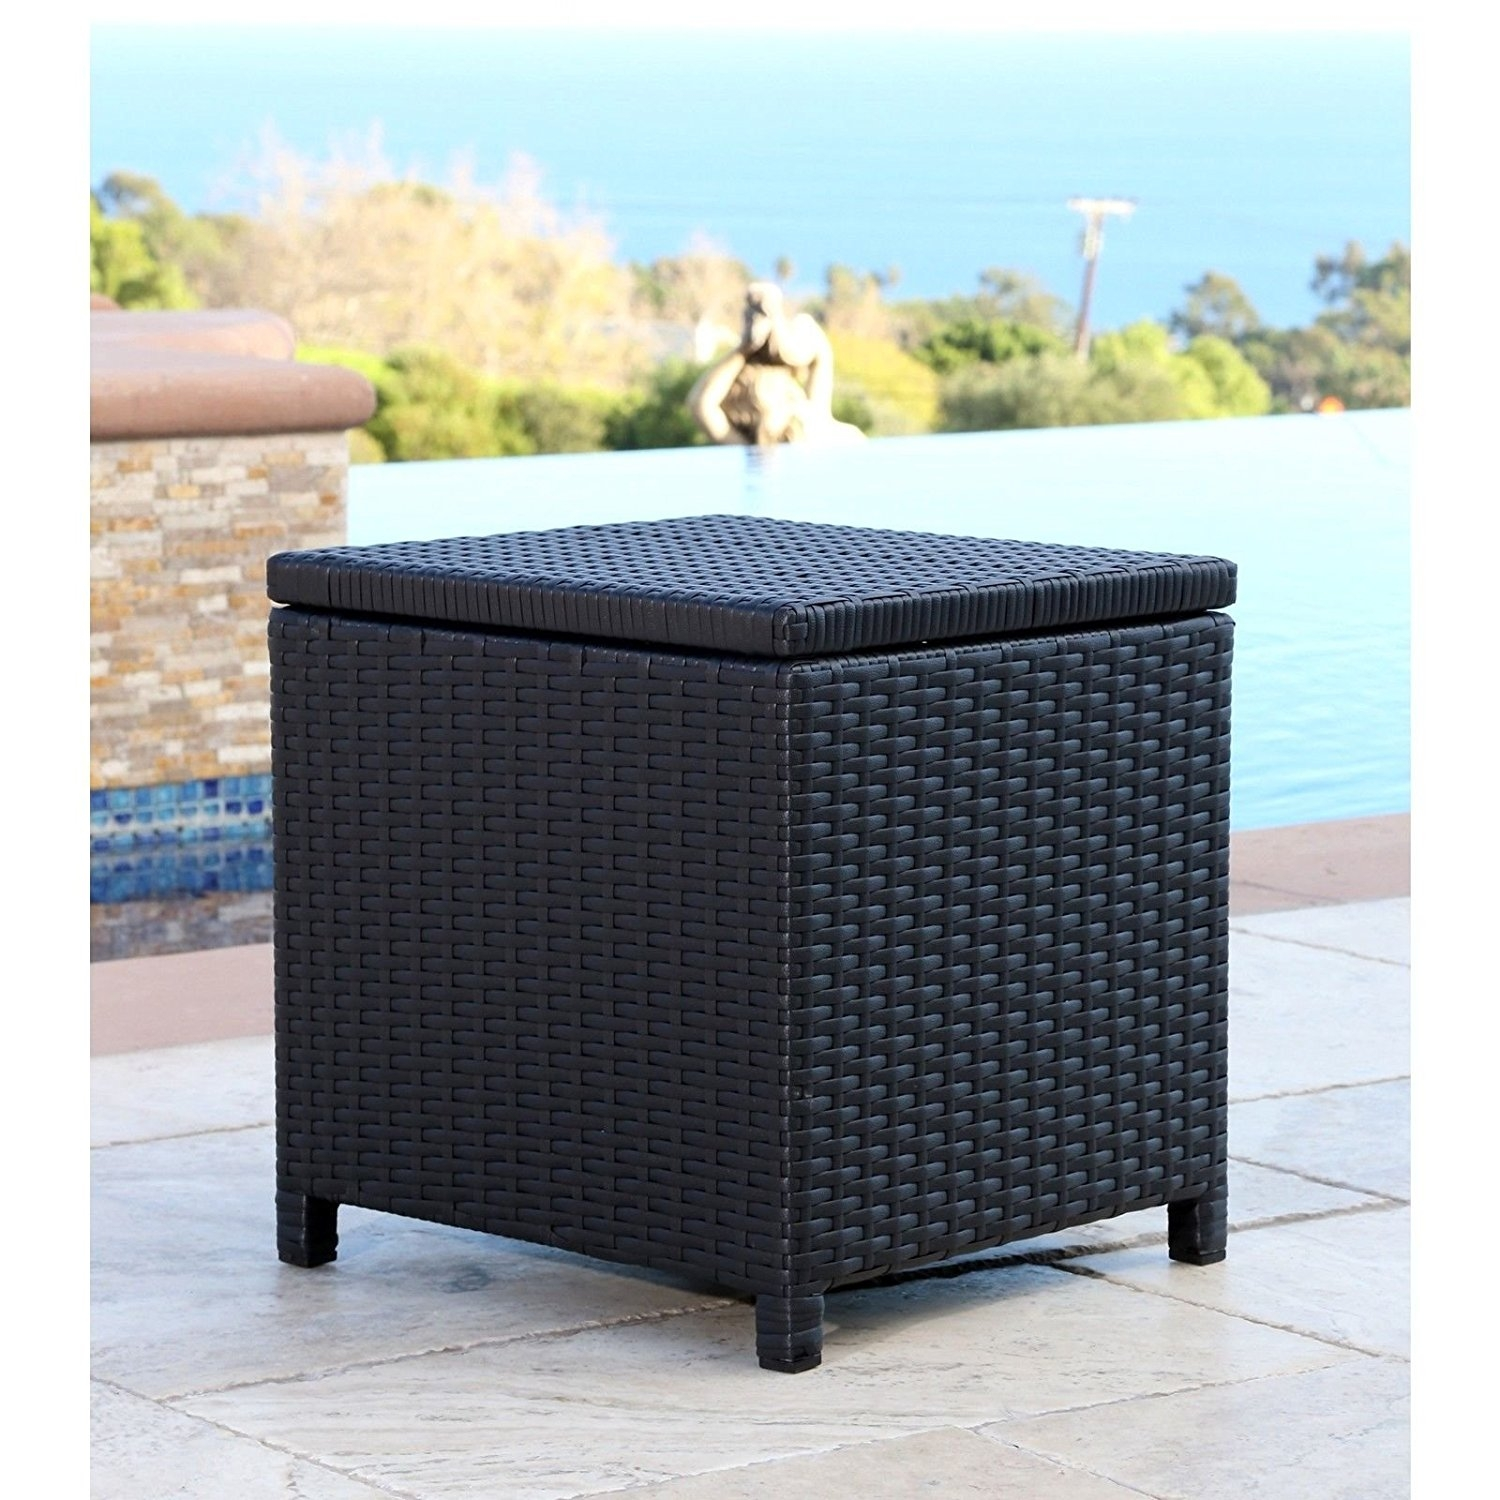 Abbyson Living Newport Outdoor Black Wicker Storage Ottoman For Patio Pool